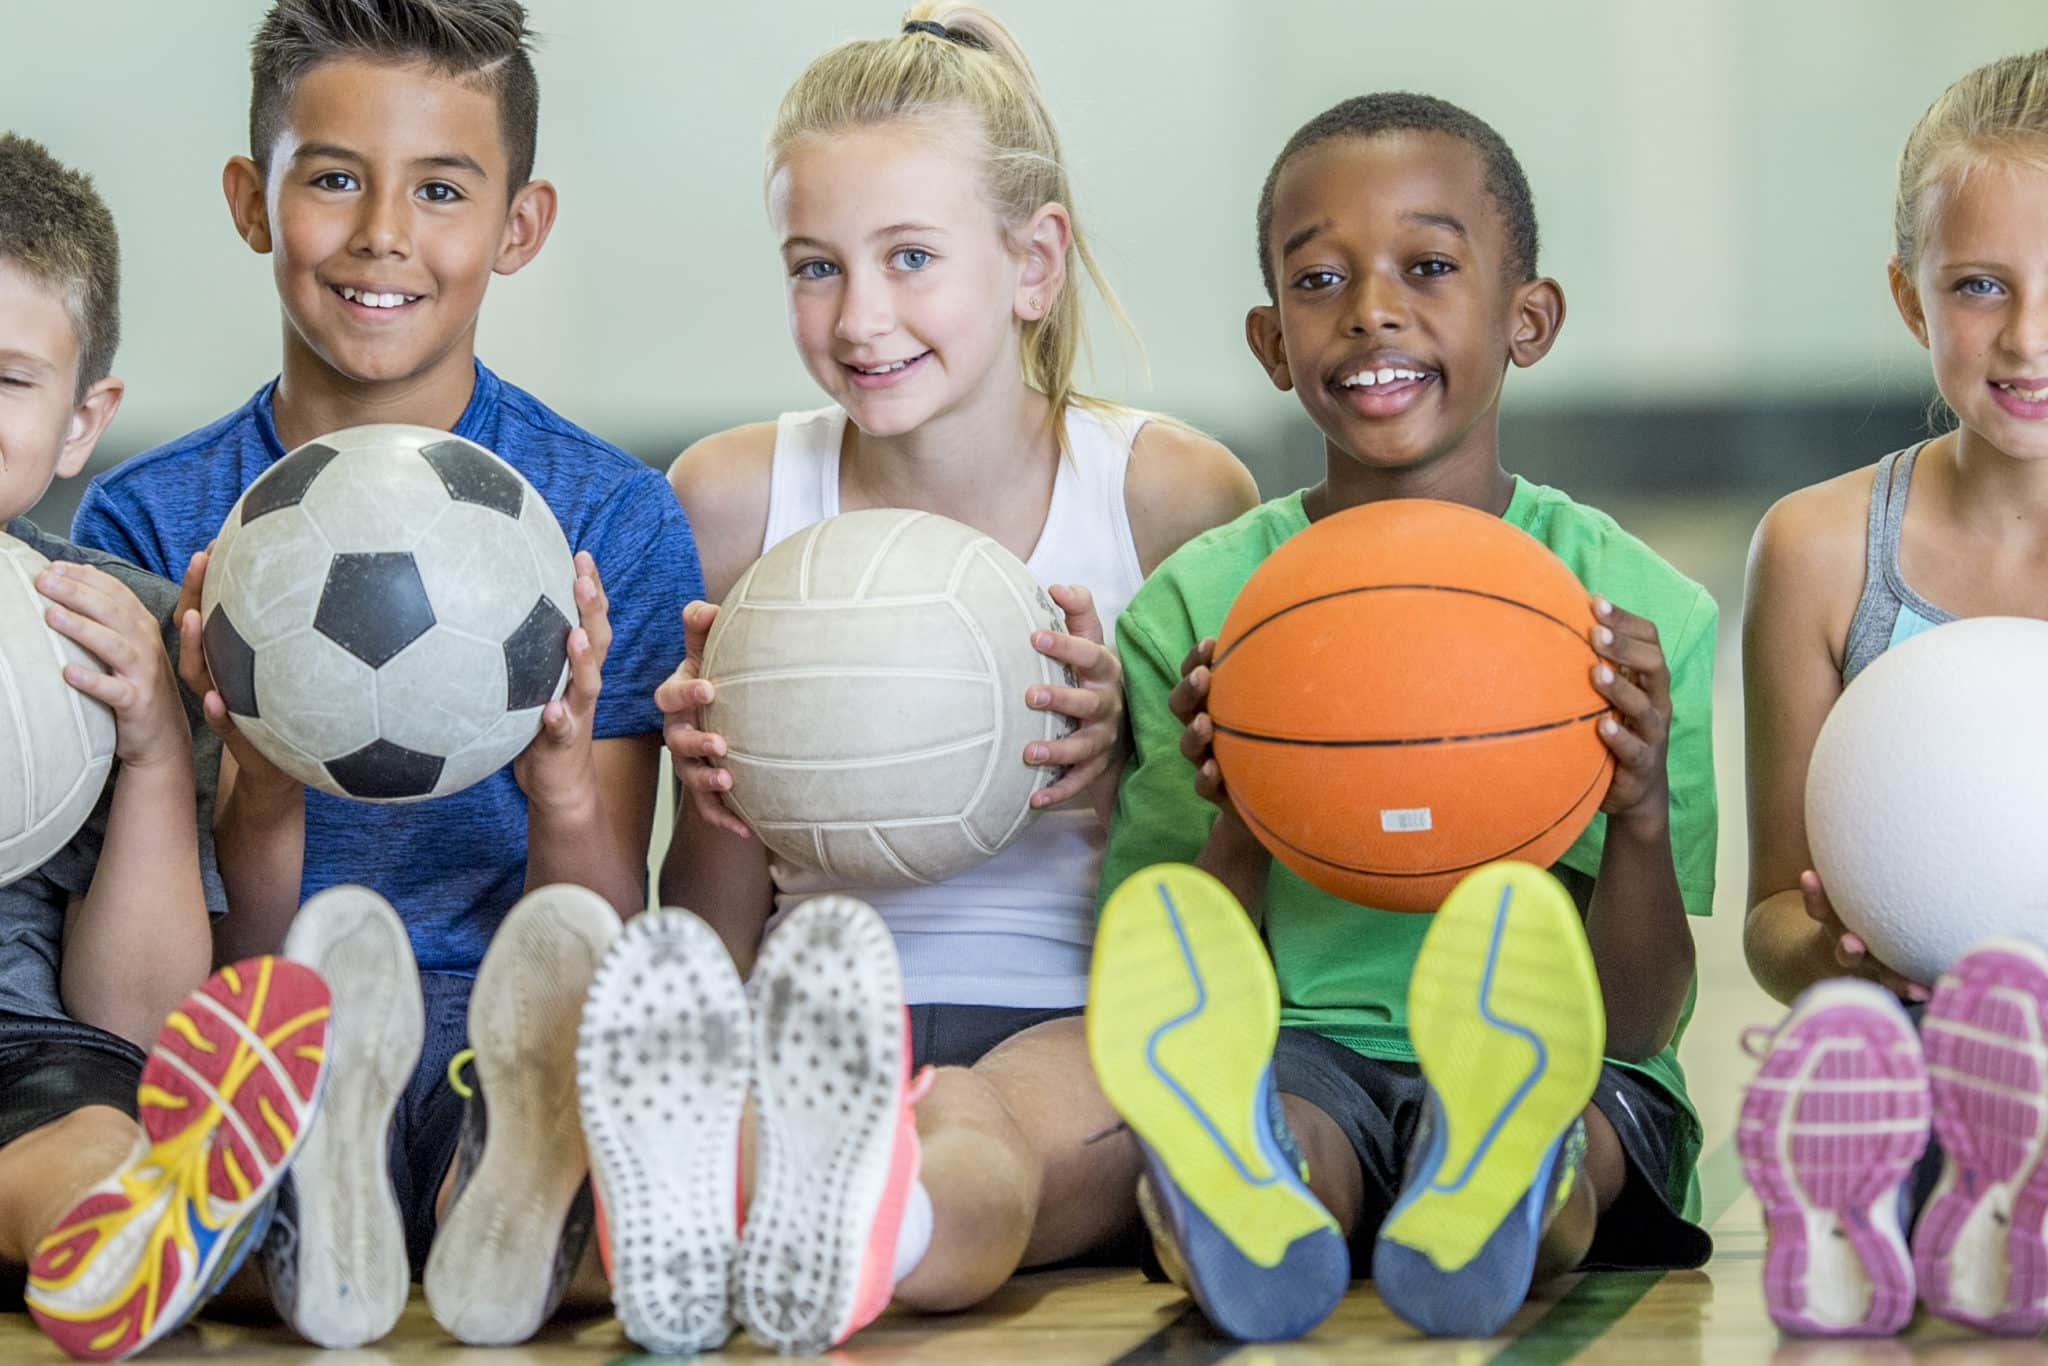 How to avoid children's sports injuries